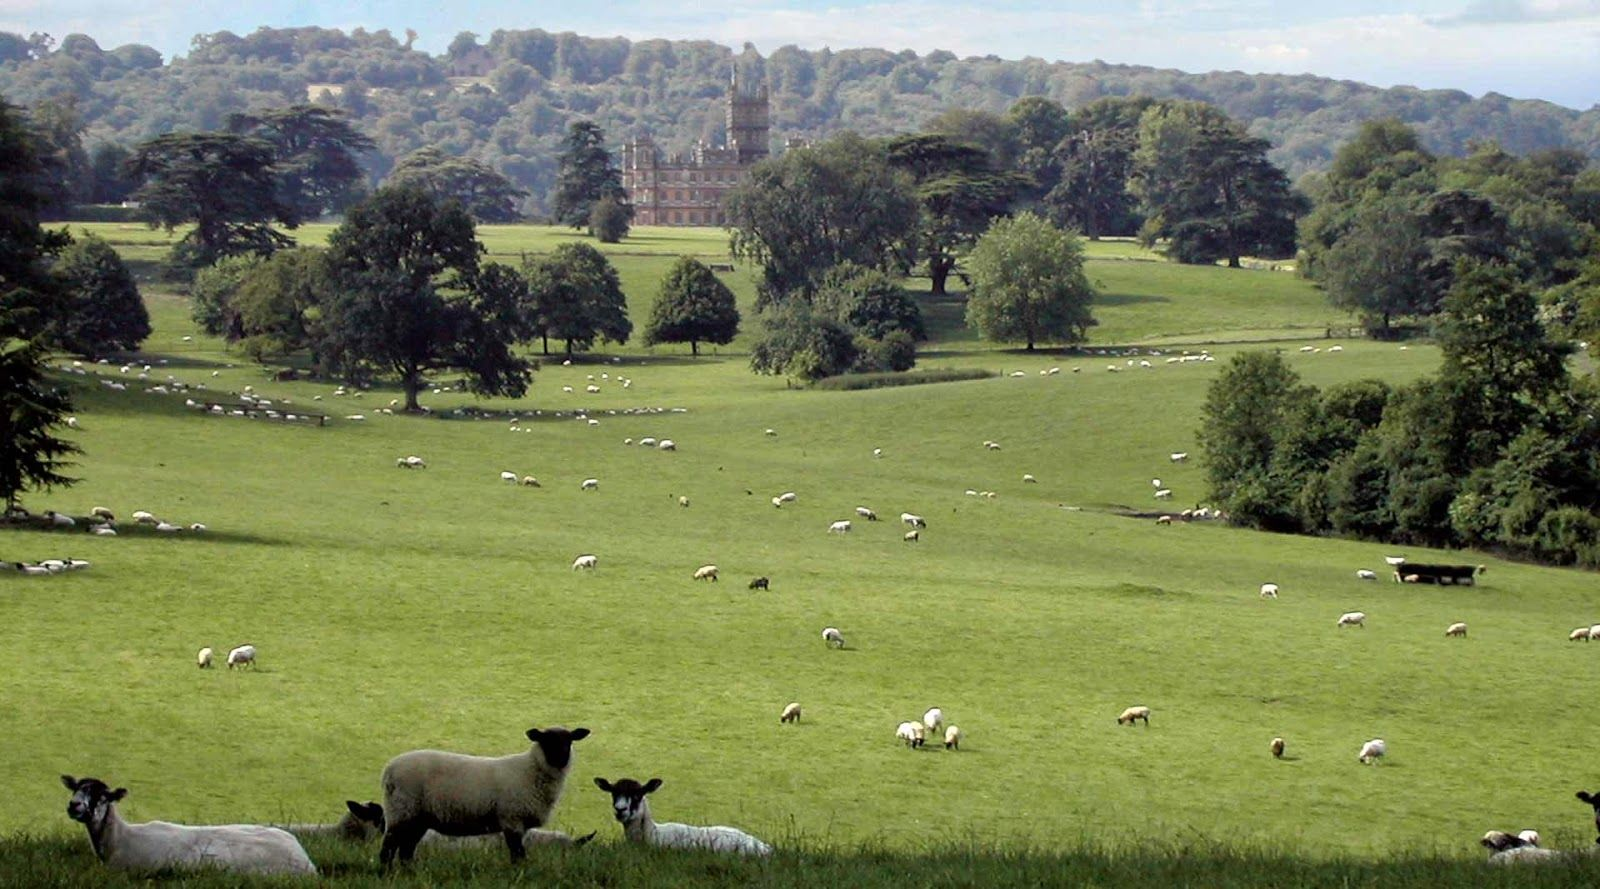 Pin by Daniel Katz on Capability Brown | Highclere castle ...